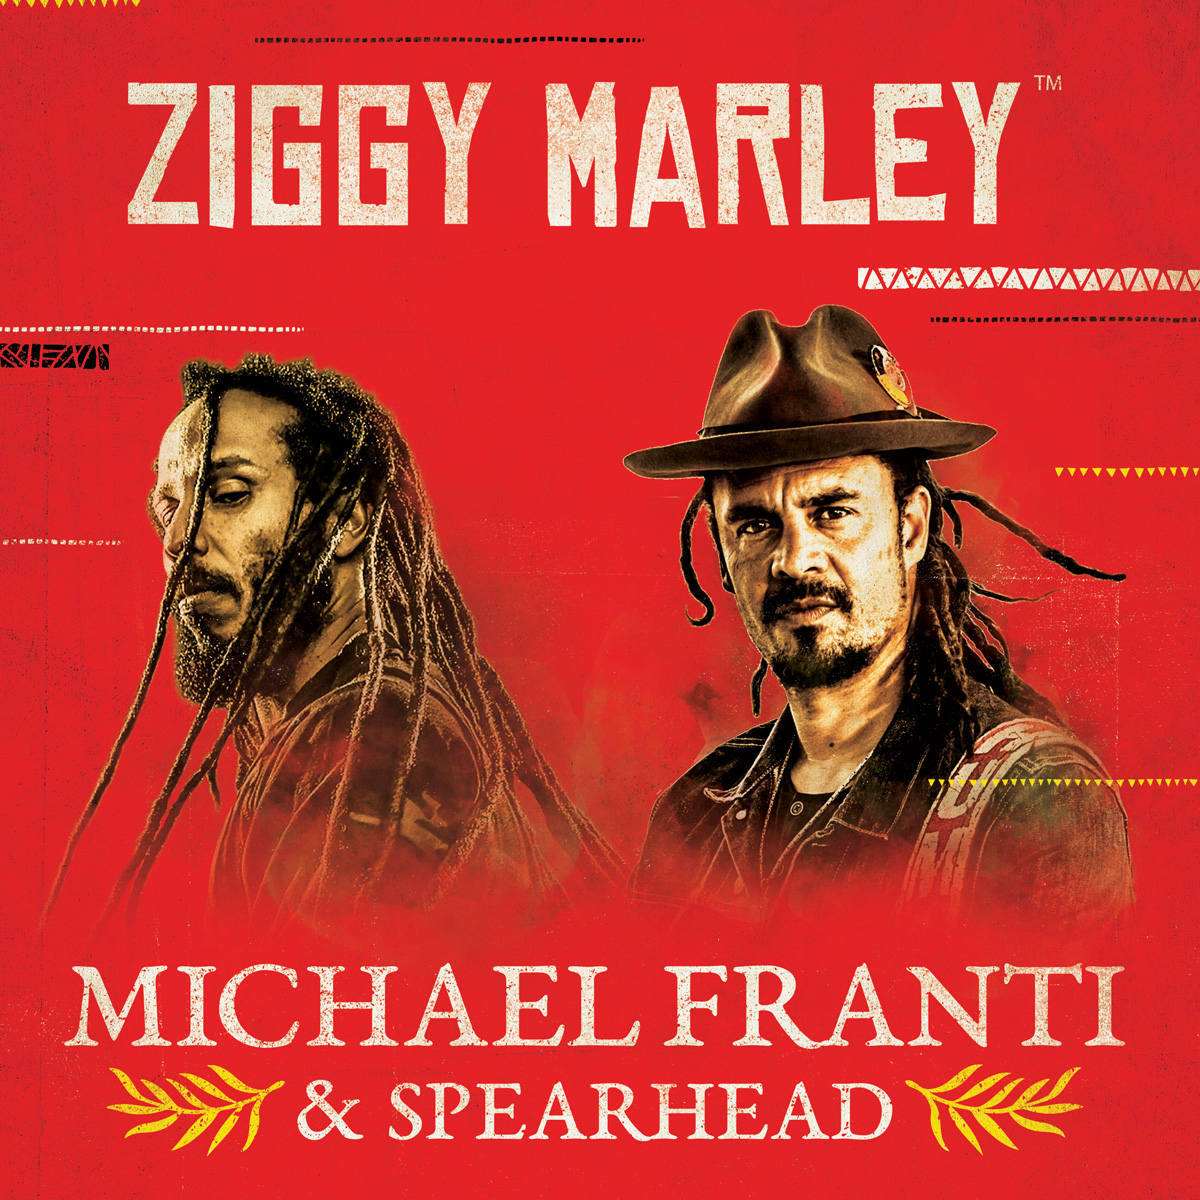 Michael Franti & Spearhead + Ziggy Marley